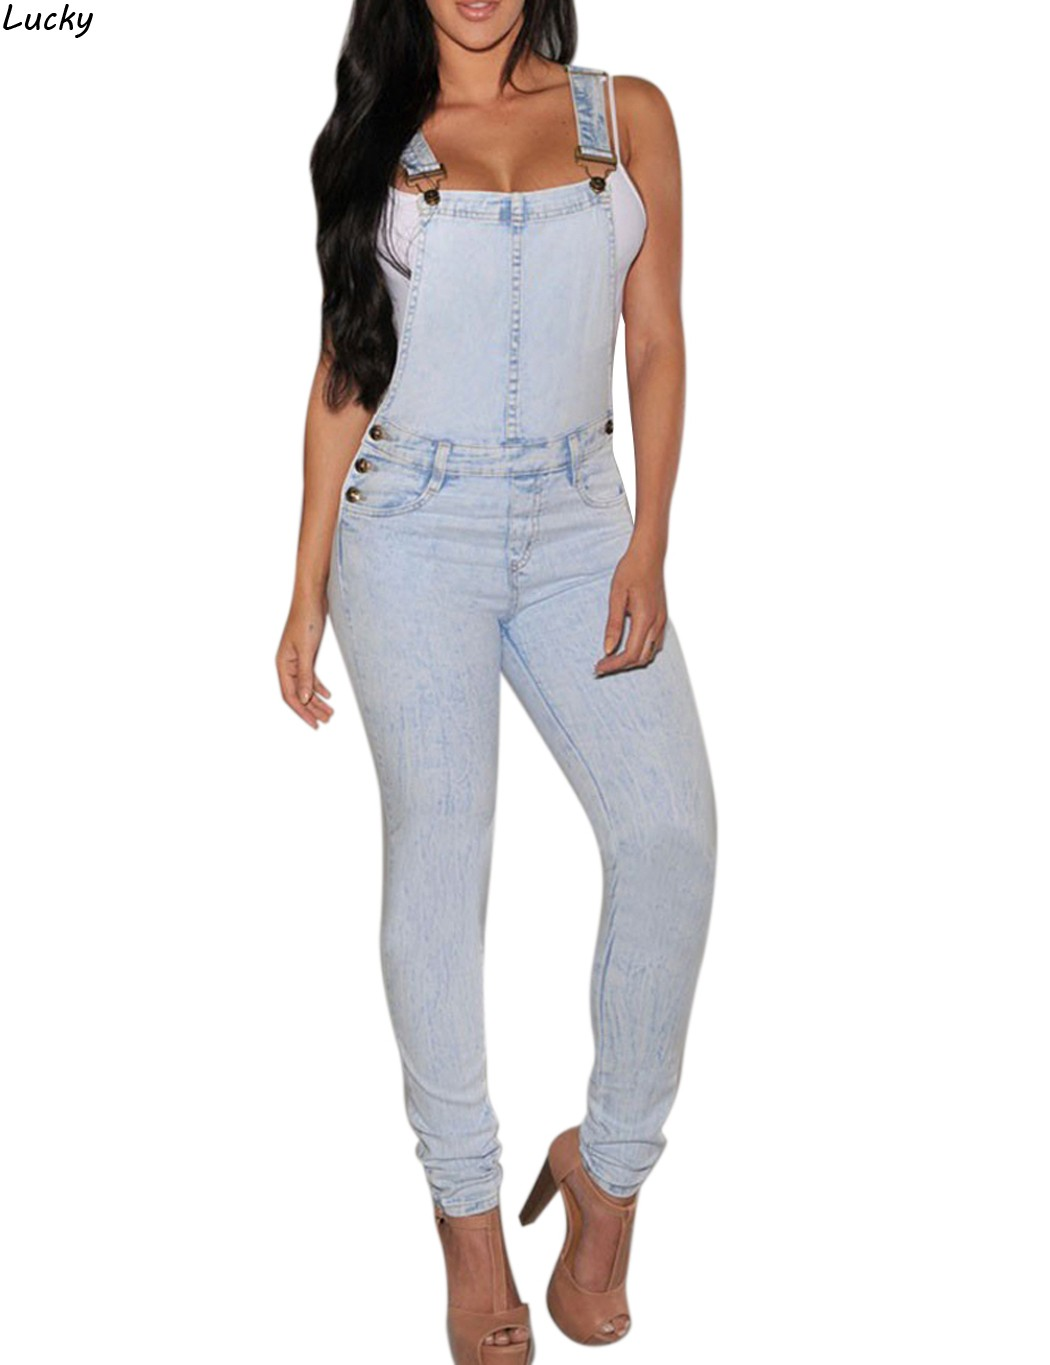 Brand Women Denim Jumpsuit 2016 Spring Autumn Casual All Match Slim Vintage Loose Solid Jeans Overall Women ClothingОдежда и ак�е��уары<br><br><br>Aliexpress